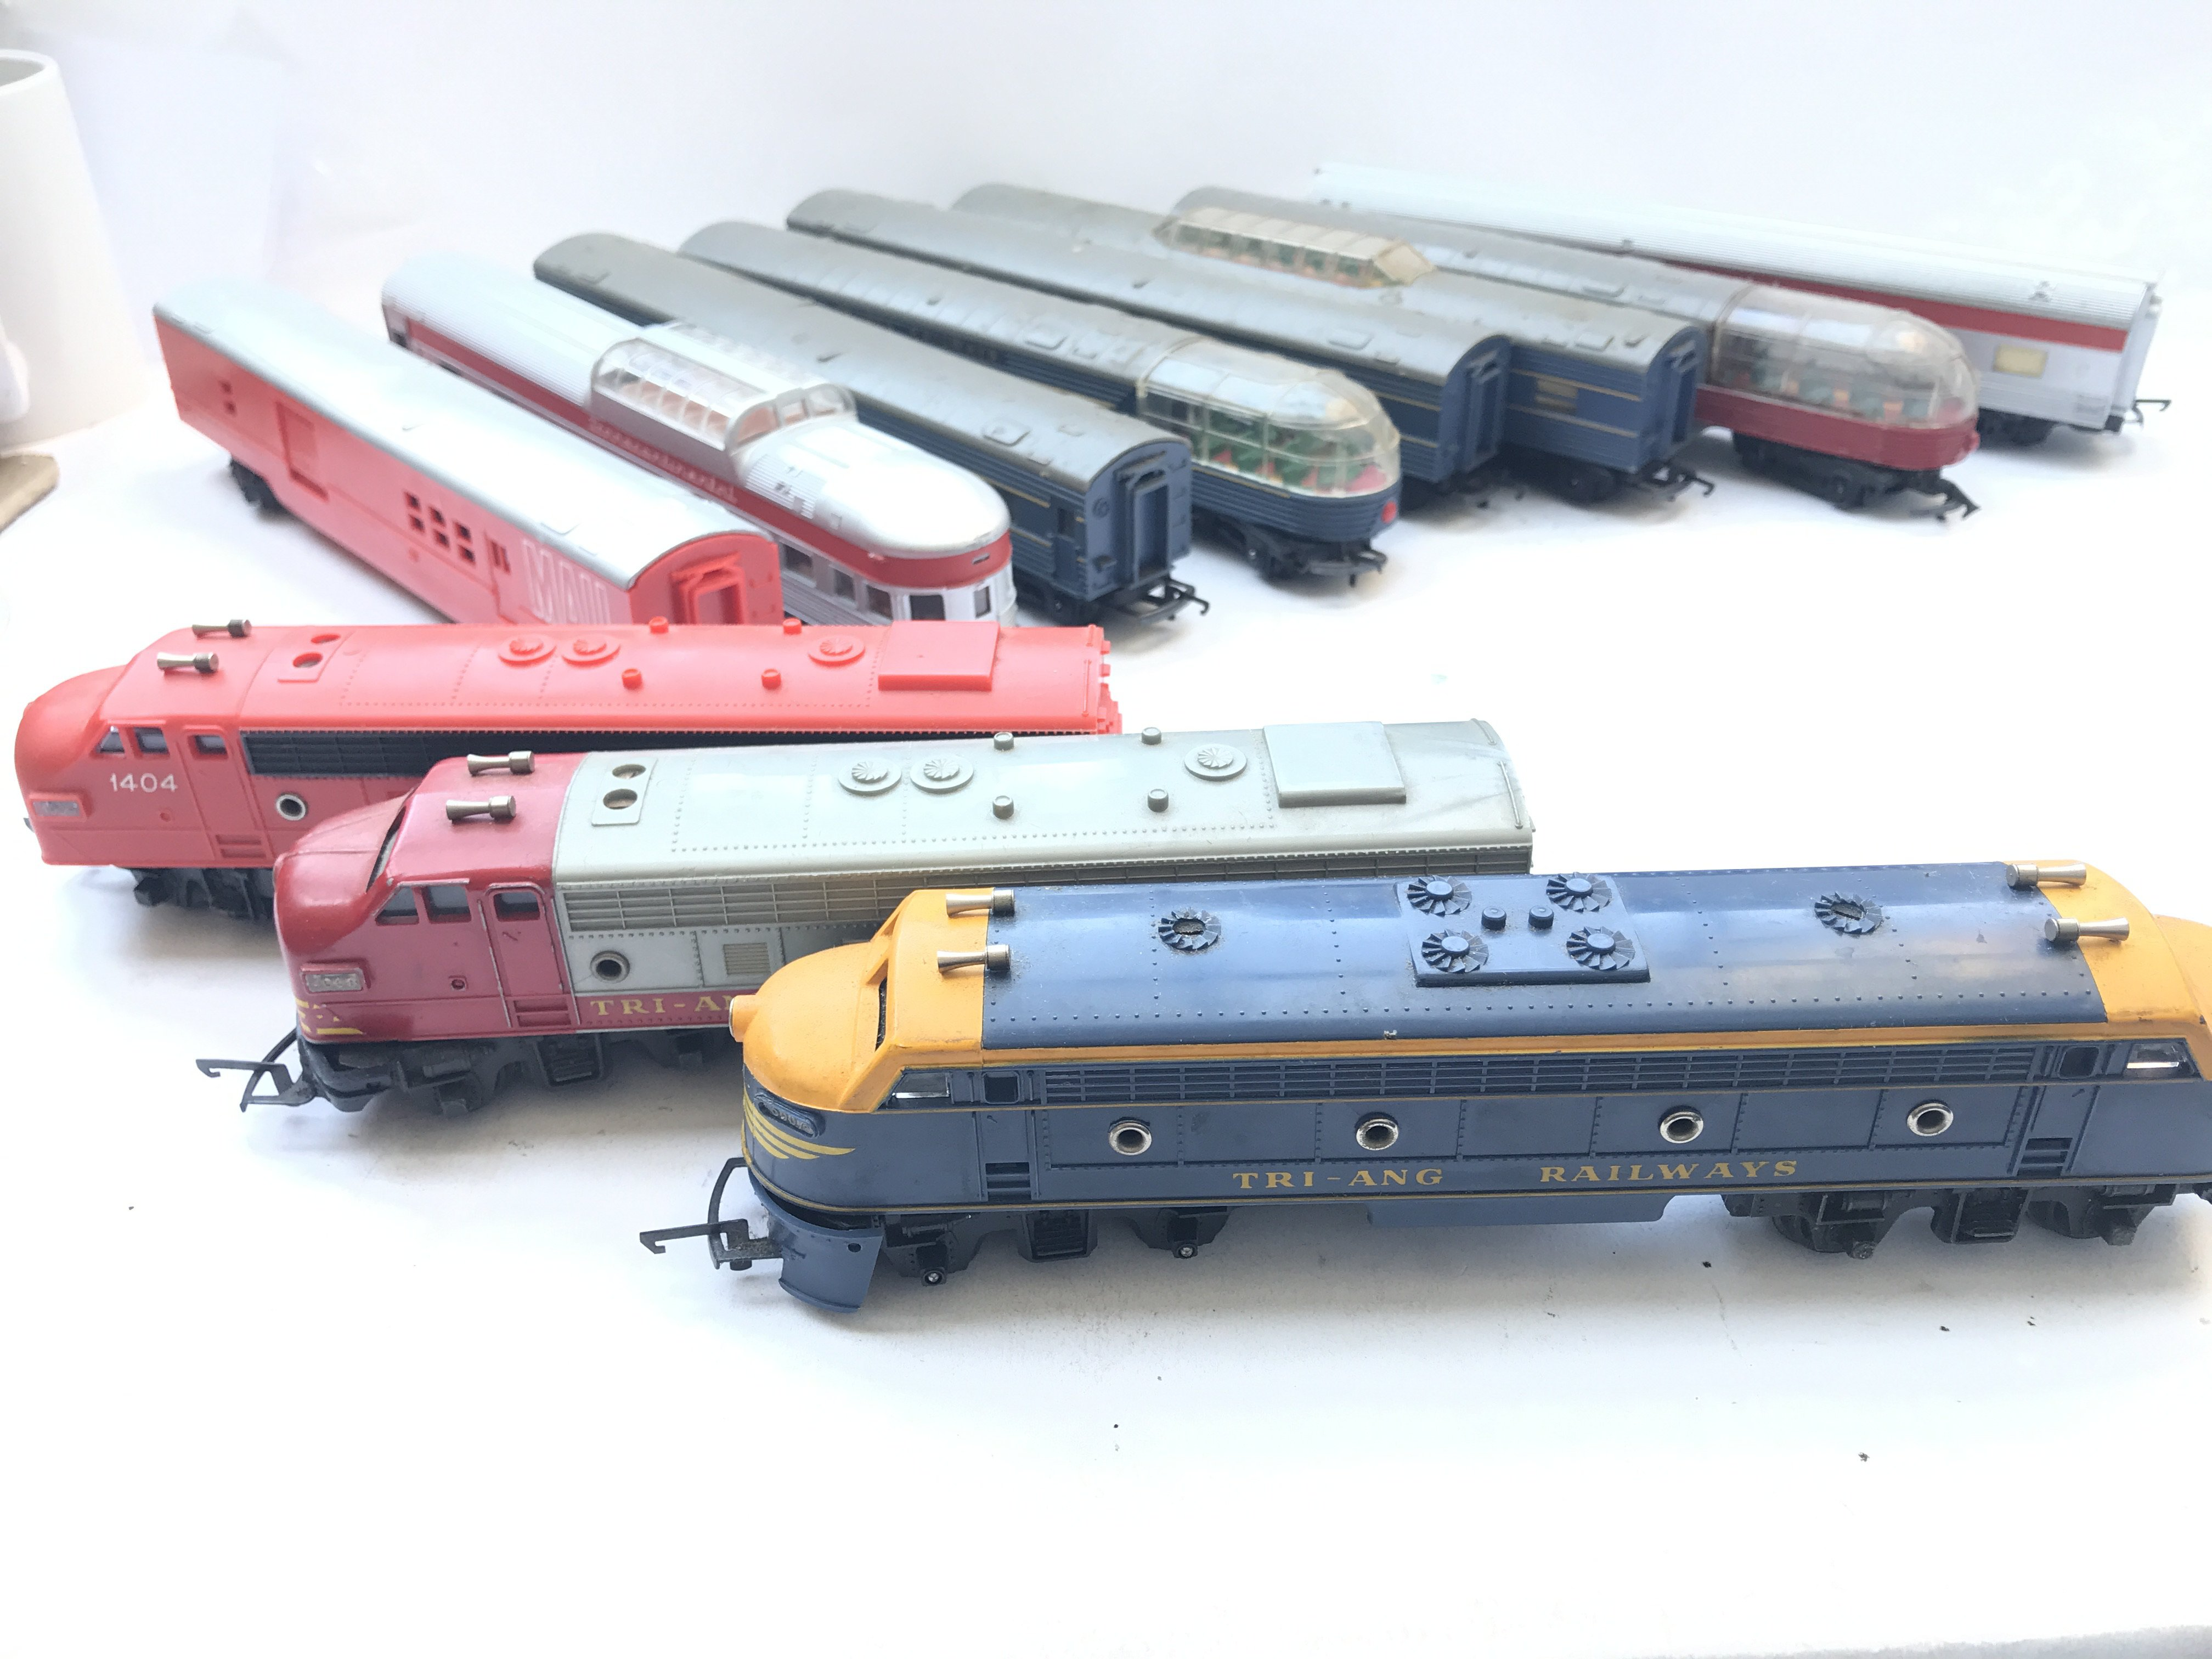 A Box Containing A Collection of 5 Tri-ang Hornby